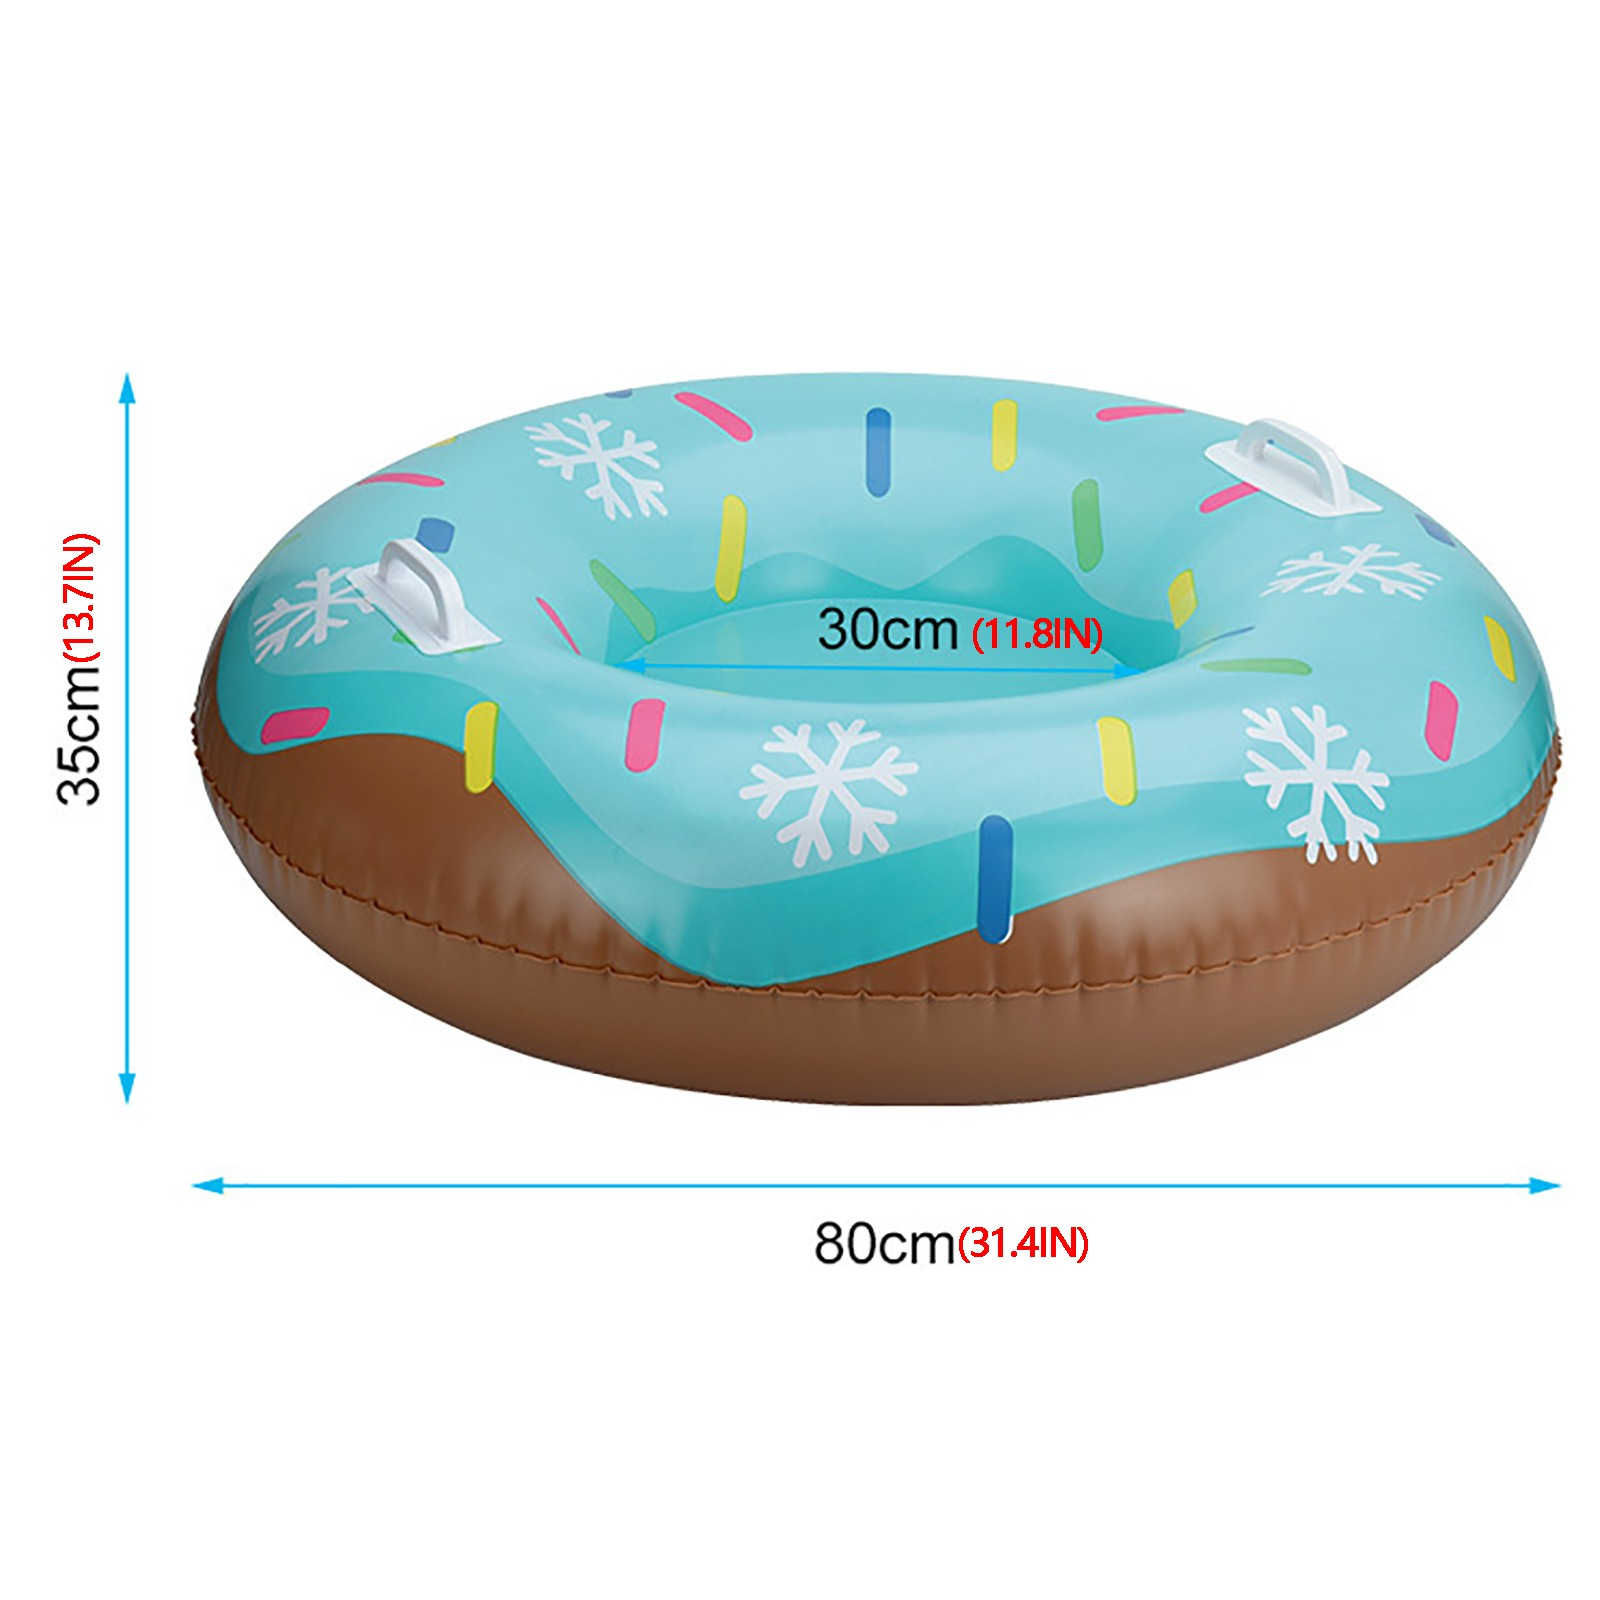 Skiing Ring Pvc Snow Sled Tire Tube For Kid Ski Pad Outdoor Sports With Handle Inflatable Ski Ring Ski Tools In Winter#32